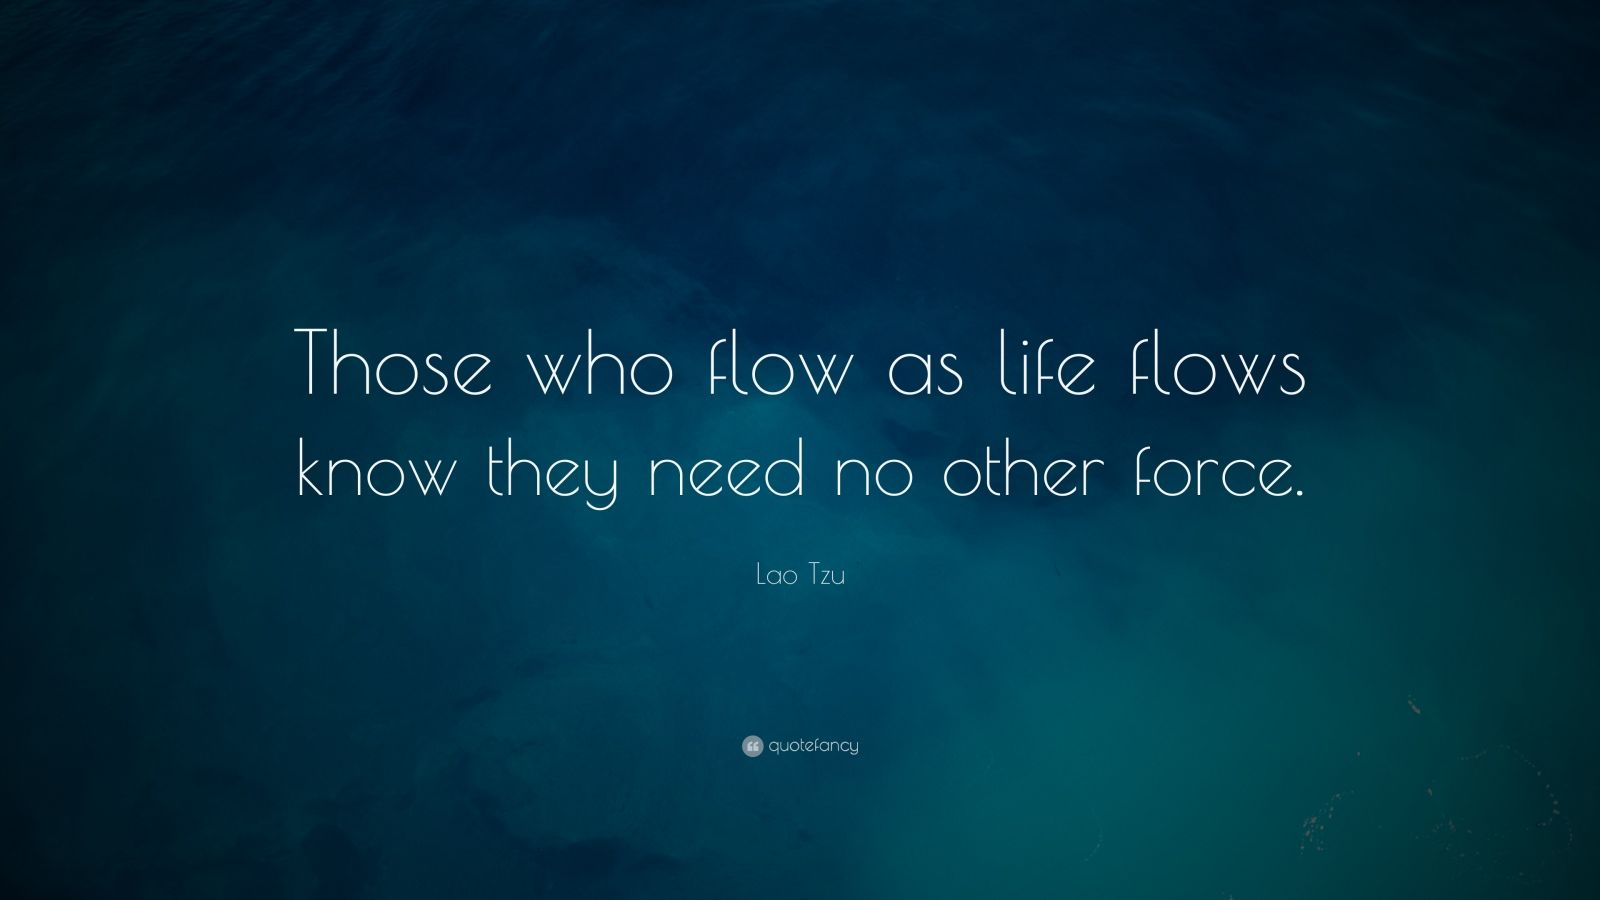 Lao Tzu Quotes Life Fair Lao Tzu Quotes 94 Wallpapers  Quotefancy